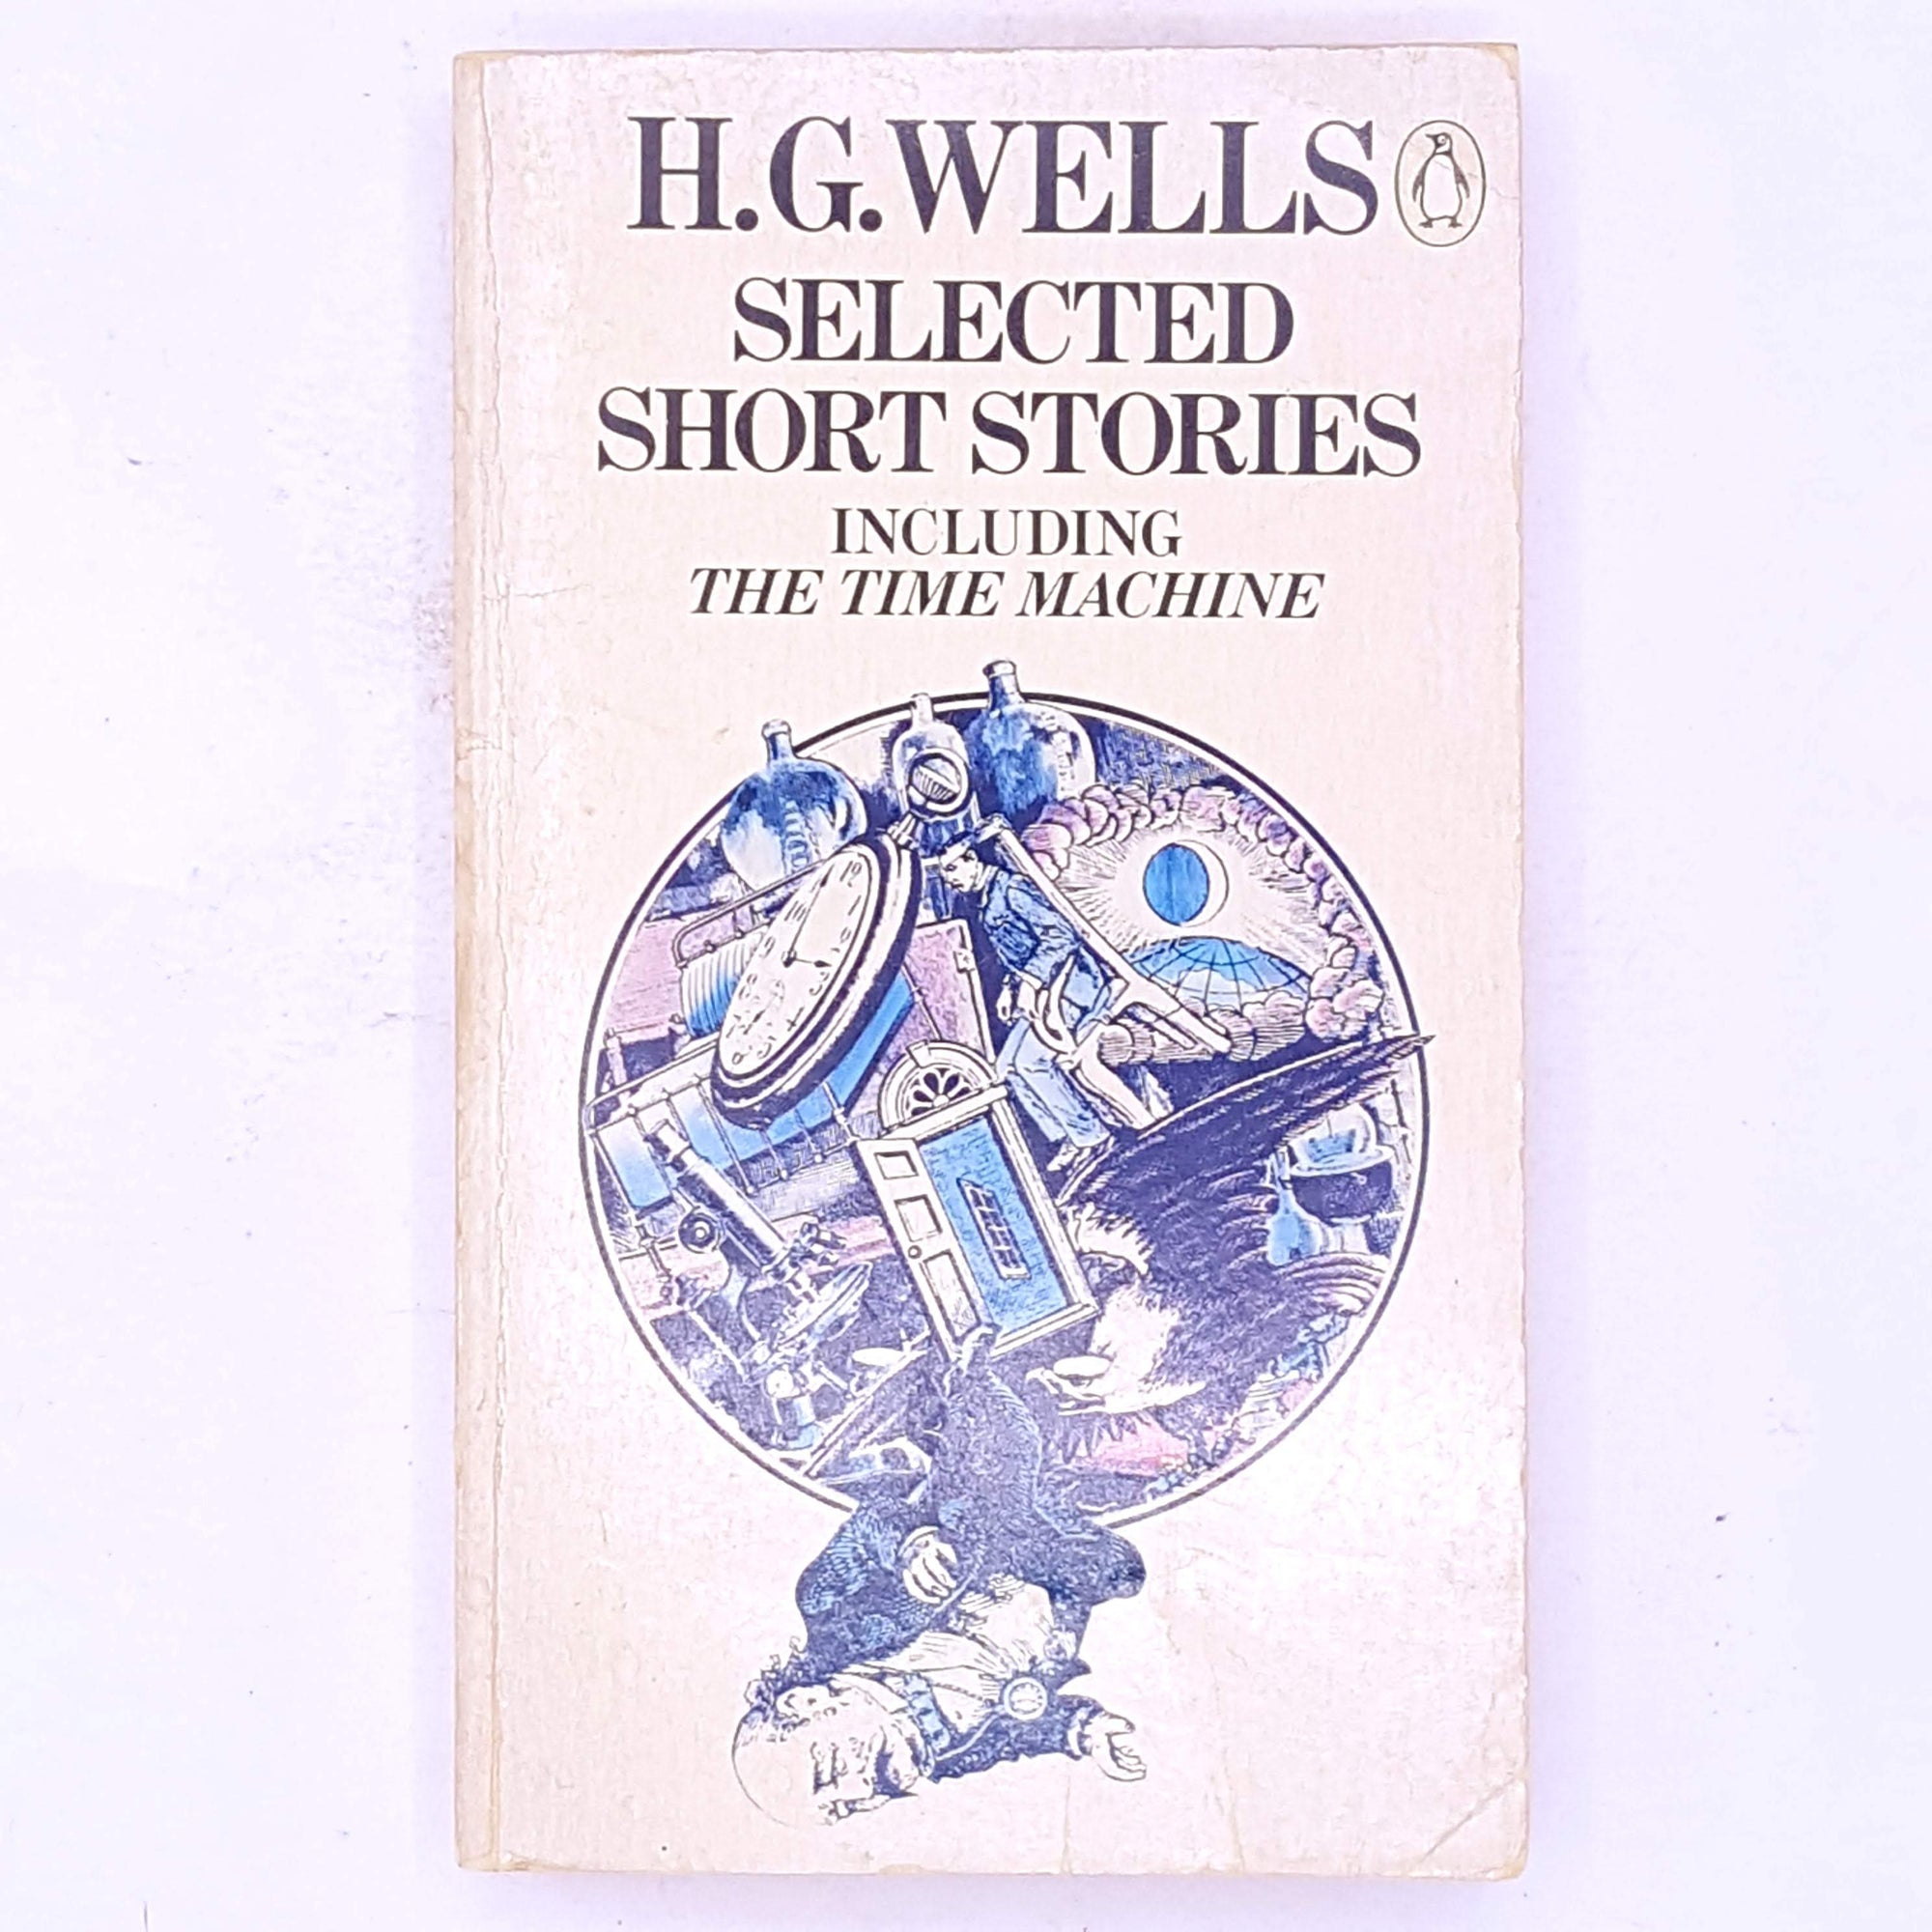 decorative-h.g.-wells-selected-short-stories-including-the-time-machine- penguin-classic-thrift-patterned-country-house-library-vintage-antique-old-science-fiction-future-fantasy- books-